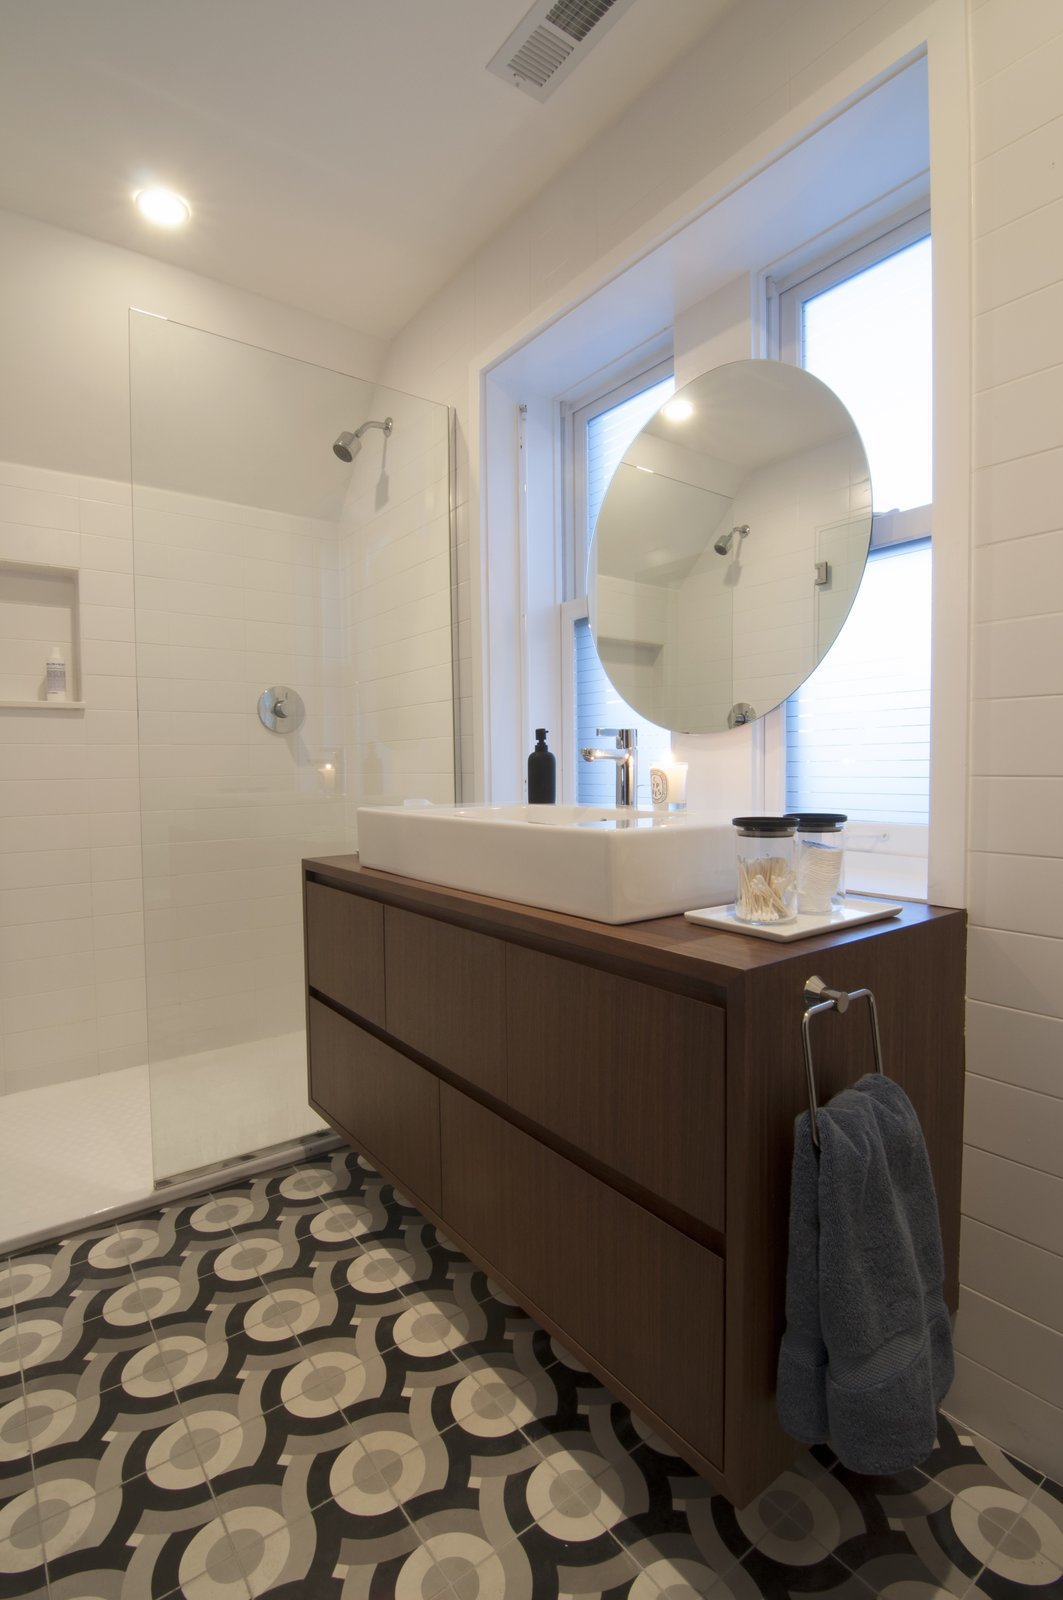 "Shively describes himself as ""big on graphics"" and designed these tiles, produced by Original Mission Tile in San Luis, Mexico, to add his own flair to the master bathroom. A simple floating vanity and minimalist shower let the custom tilework take center stage."